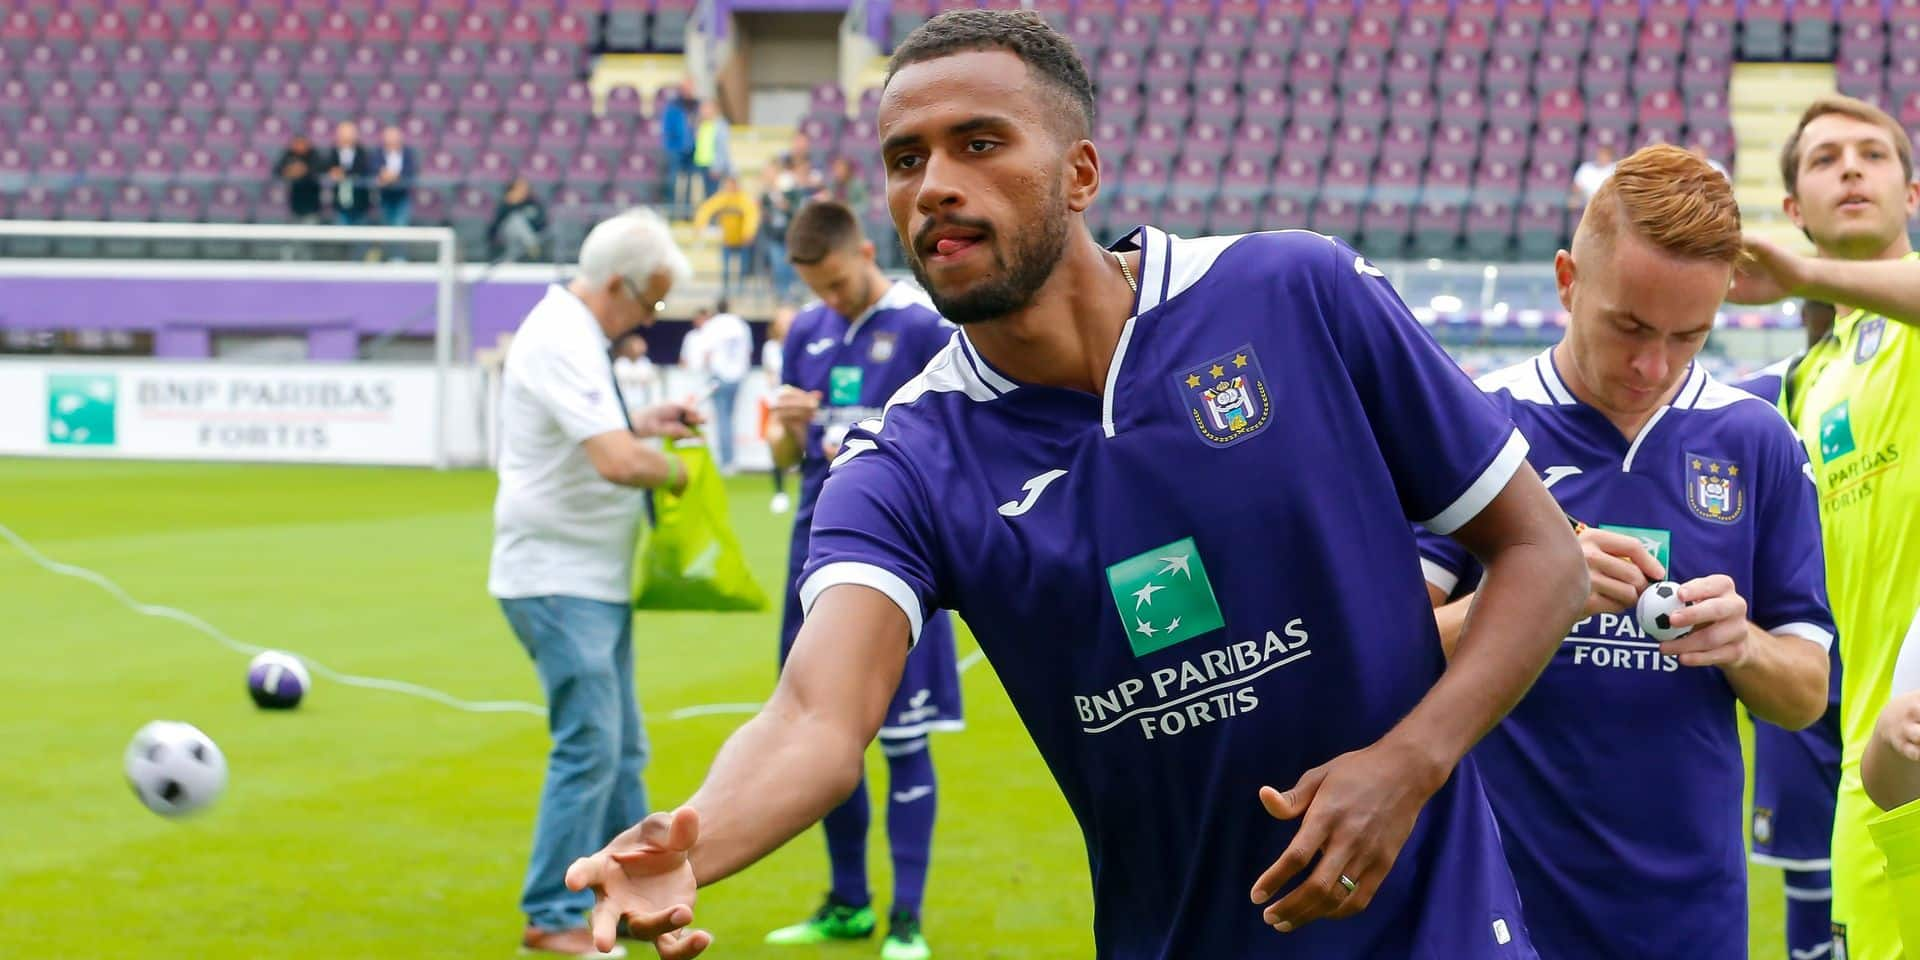 Illustration picture shows a training session on the fan day of soccer team RSC Anderlecht, Sunday 14 July 2019 in Anderlecht, Brussels. BELGA PHOTO NICOLAS MAETERLINCK